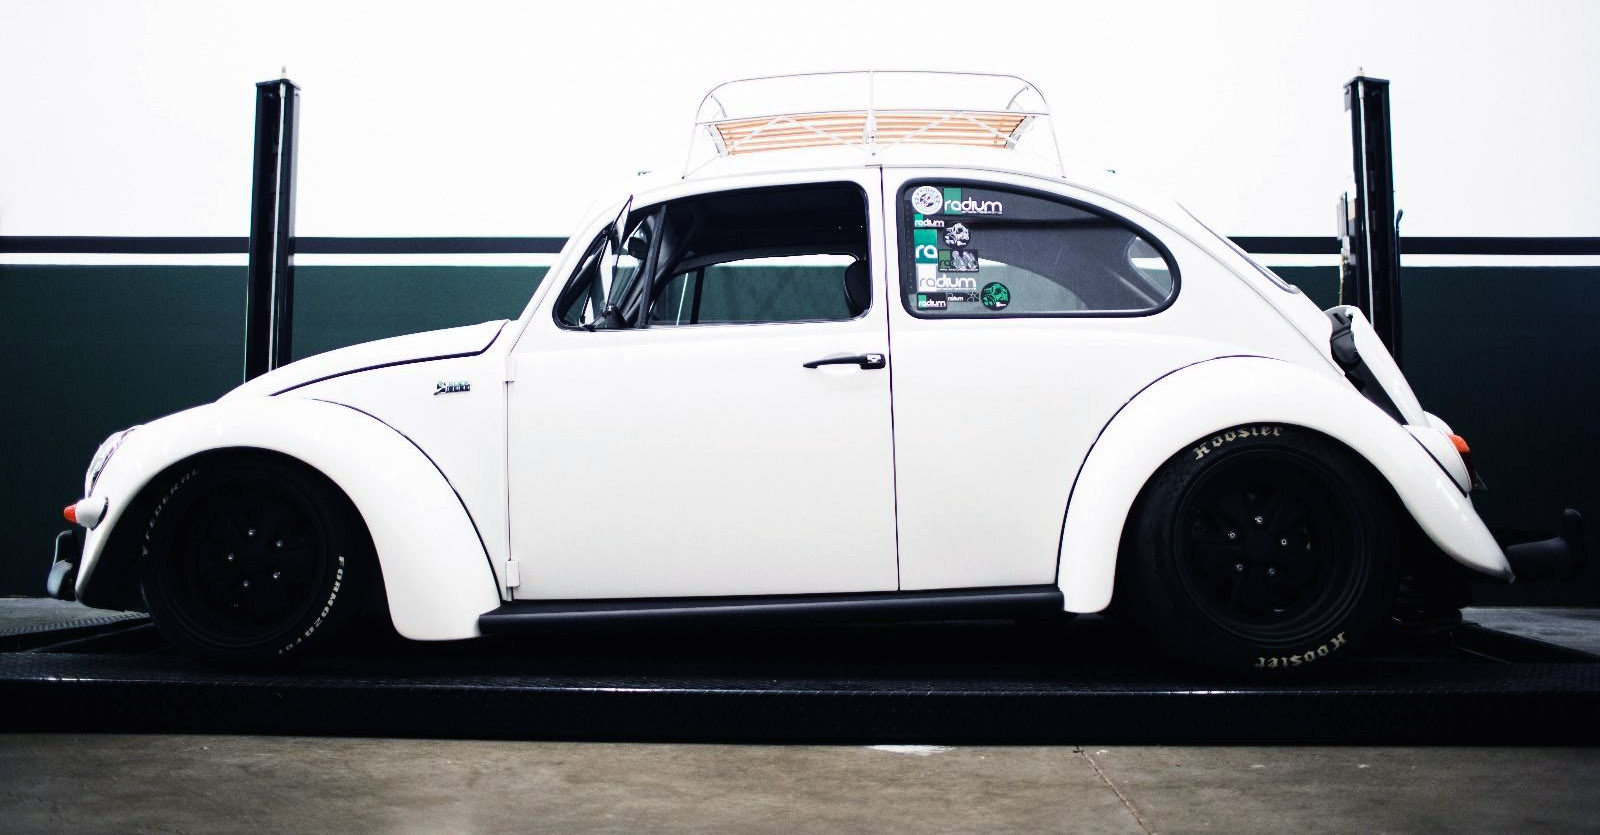 This 1965 Volkswagen Beetle Is For On Ebay In Damascus Oregon With A Reserve The Project Was Completed 2017 By An Employee At Radium Engineering